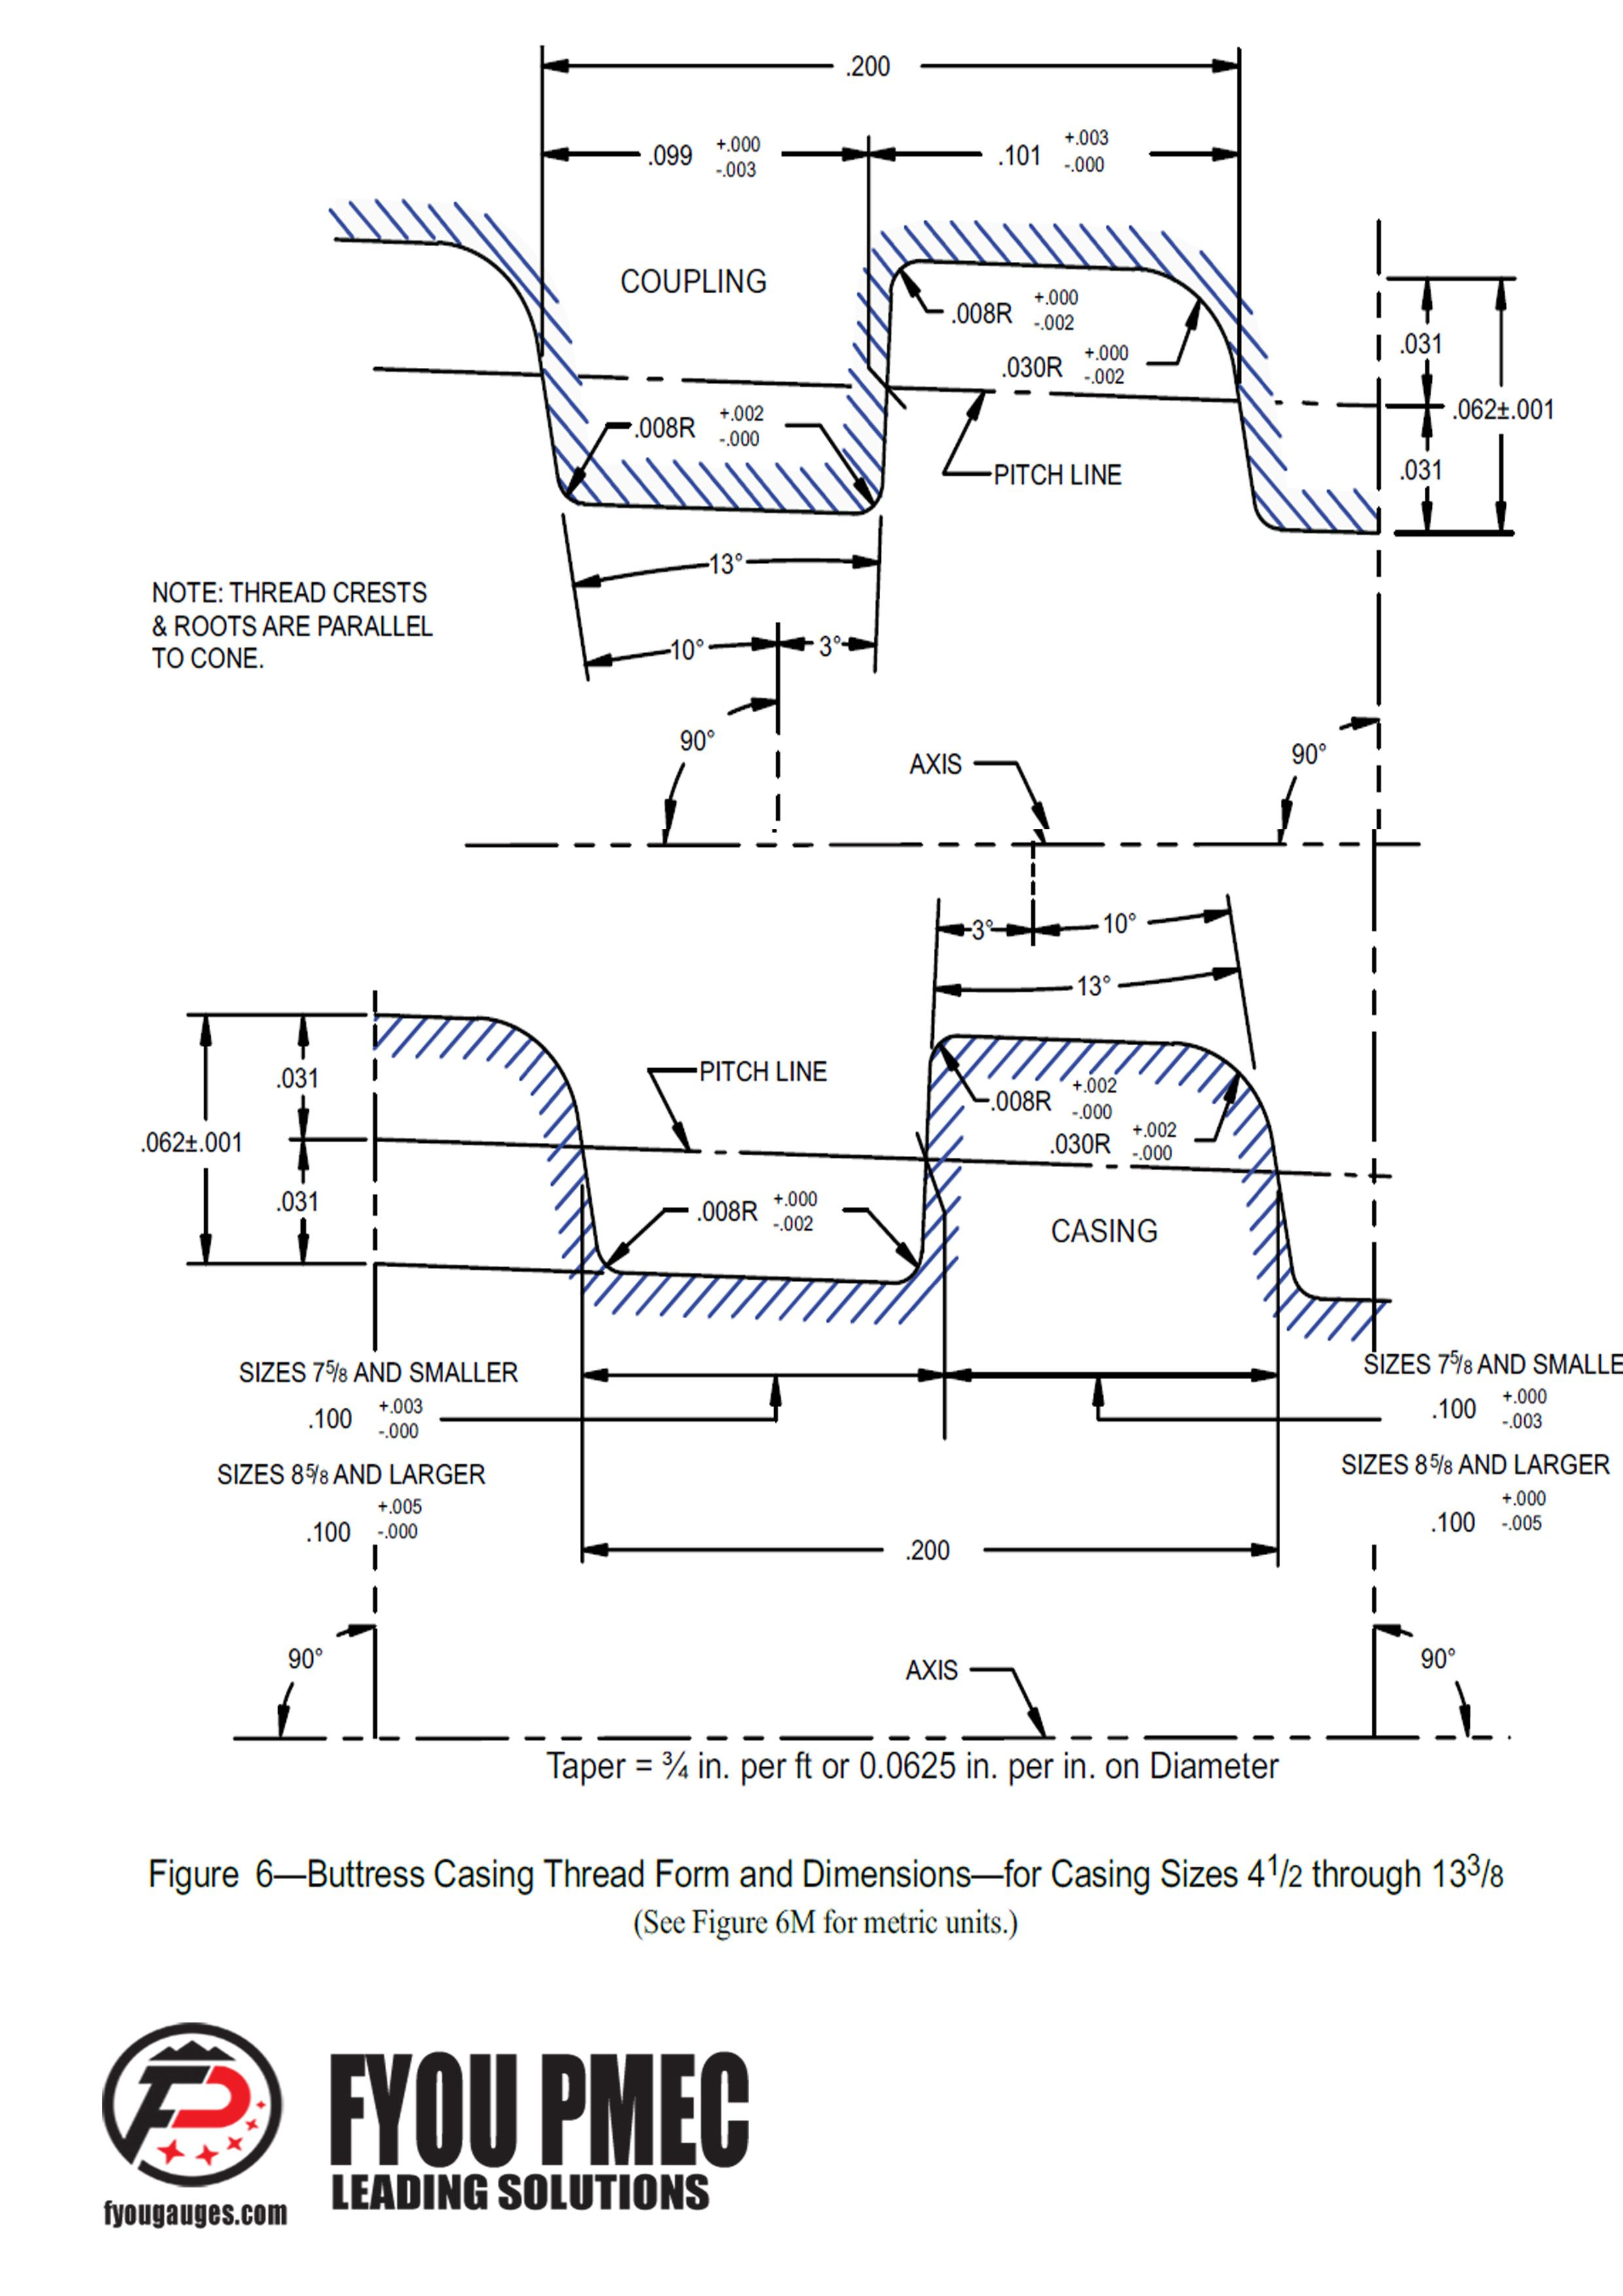 API Spec 5B Buttress Casing Thread Form and Dimensions for